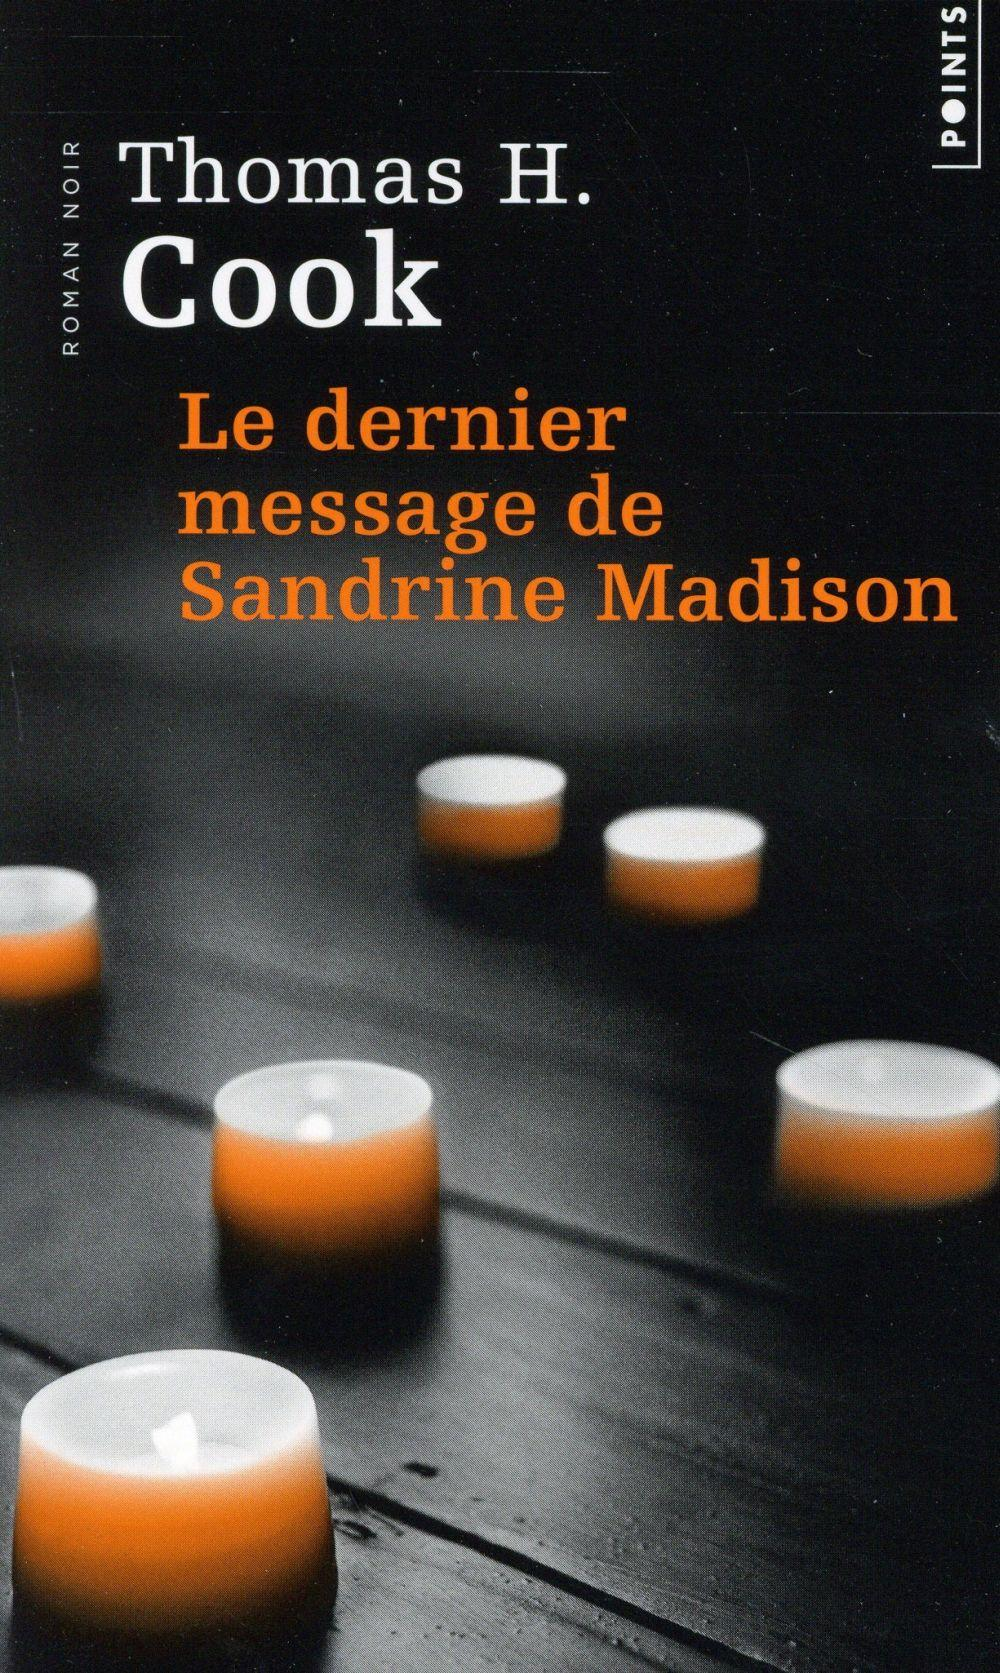 Le dernier message de Sandrine Madison  - Thomas H. Cook